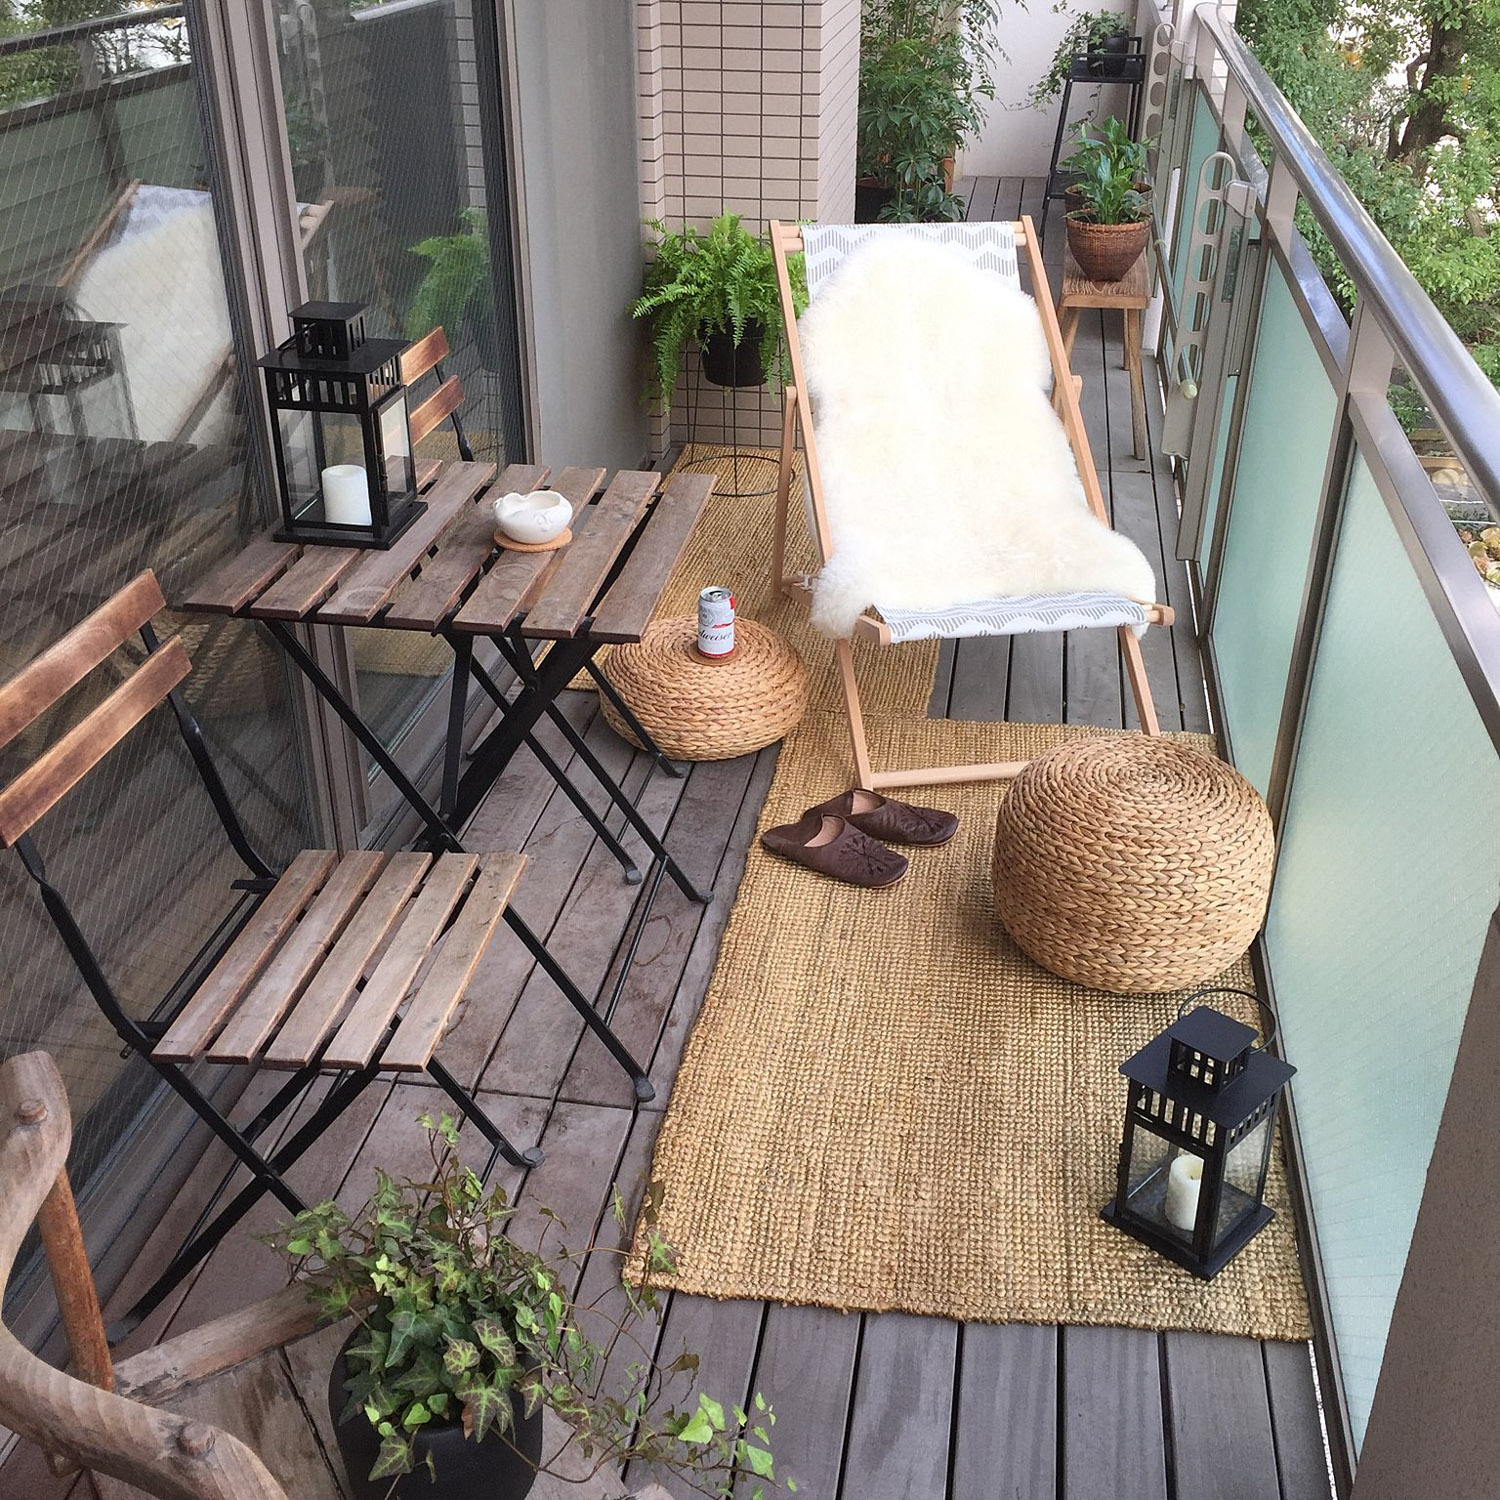 Balcony: Inspiration For Small Apartment Balconies In The City